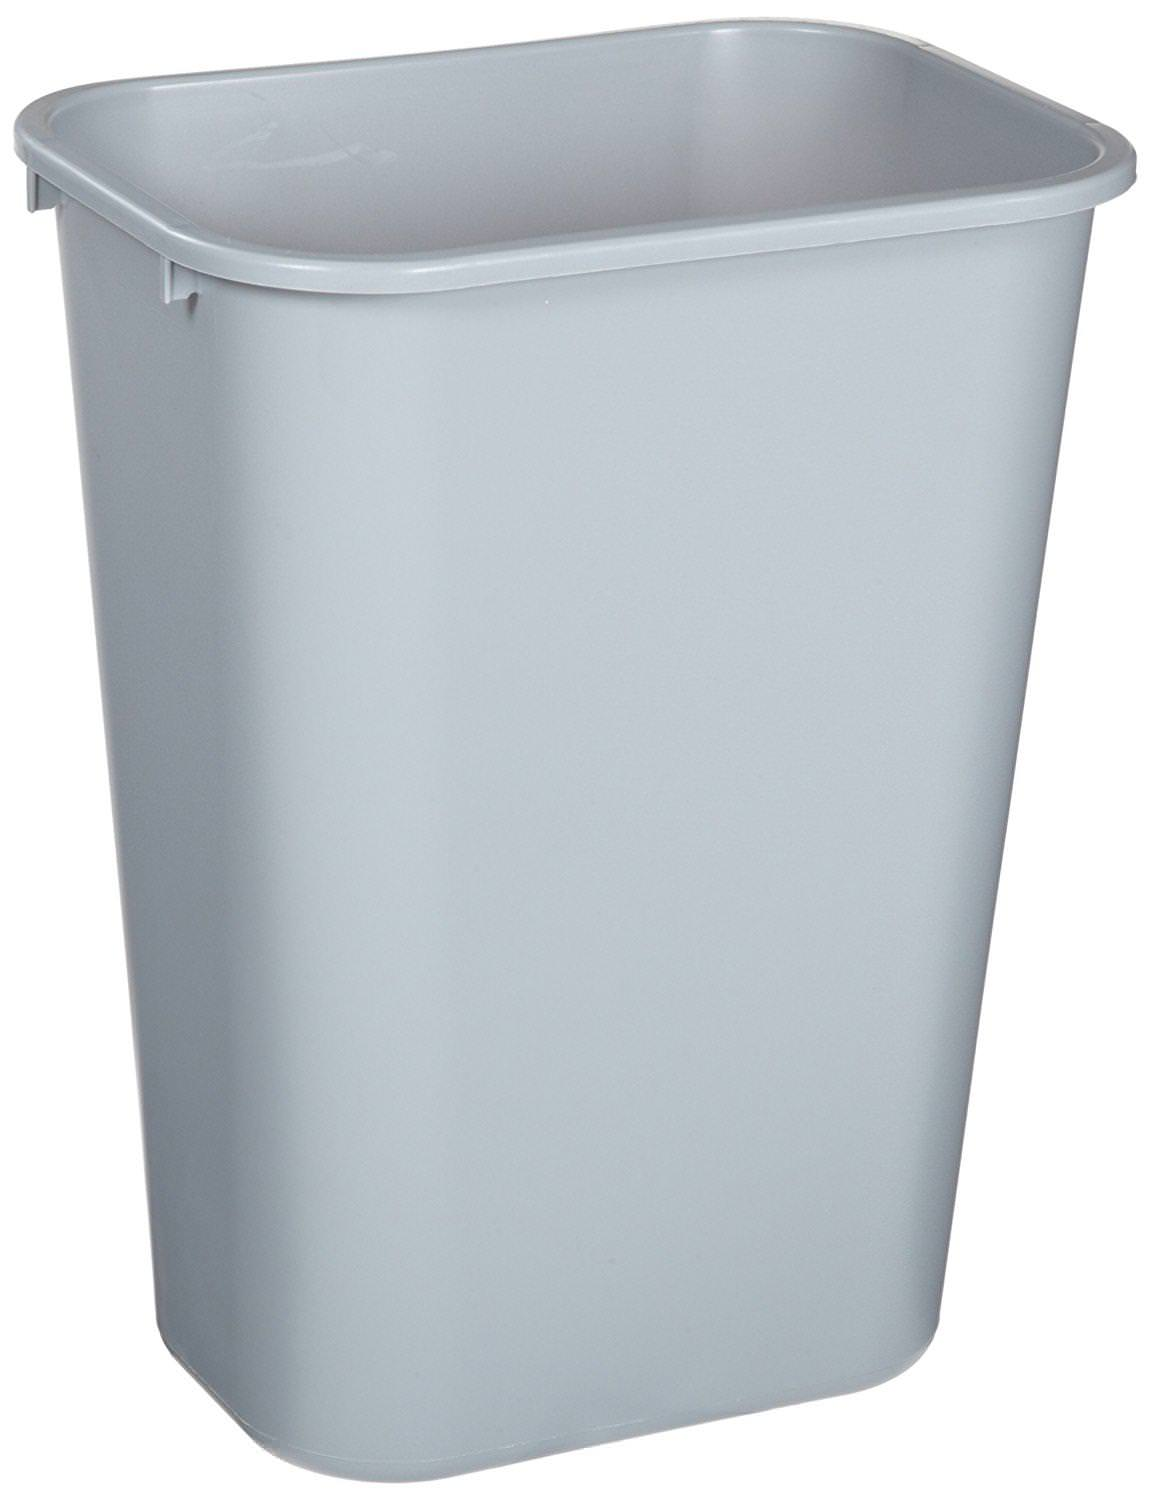 Image of: kitchen garbage cans canada